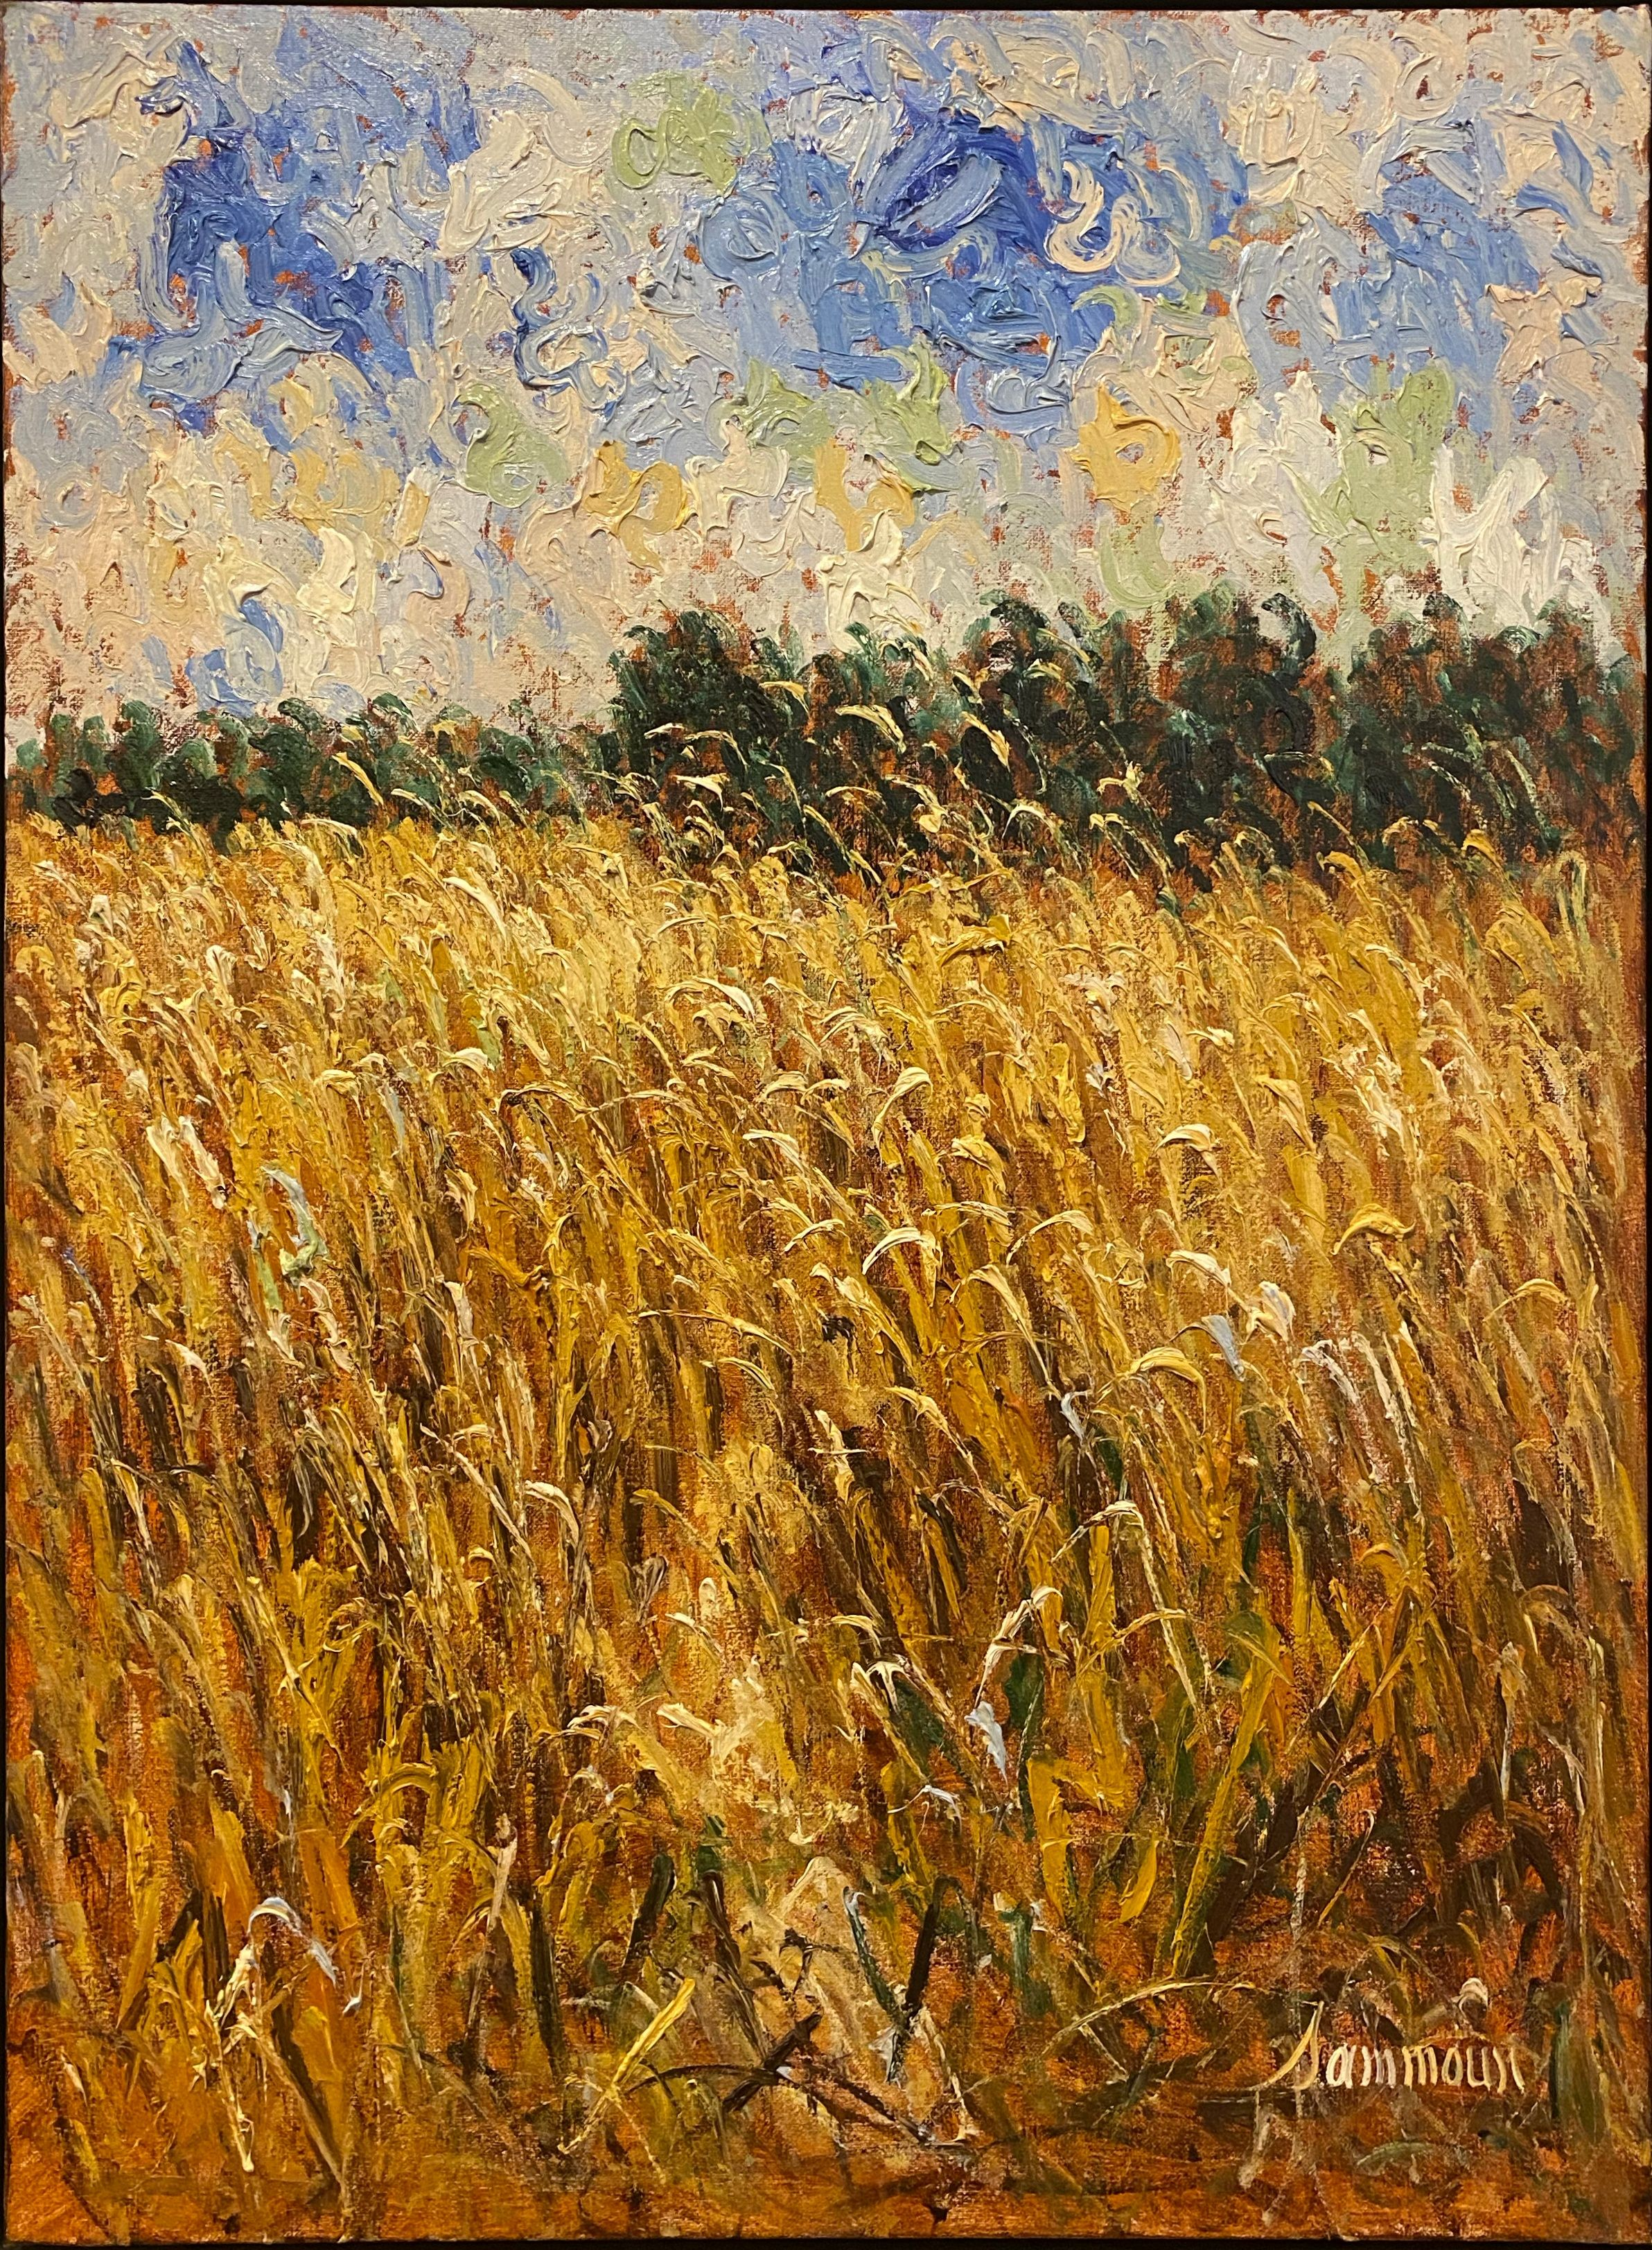 Samir- Sun Scorched Wheat Field - Painting - Off The Wall Gallery Houston